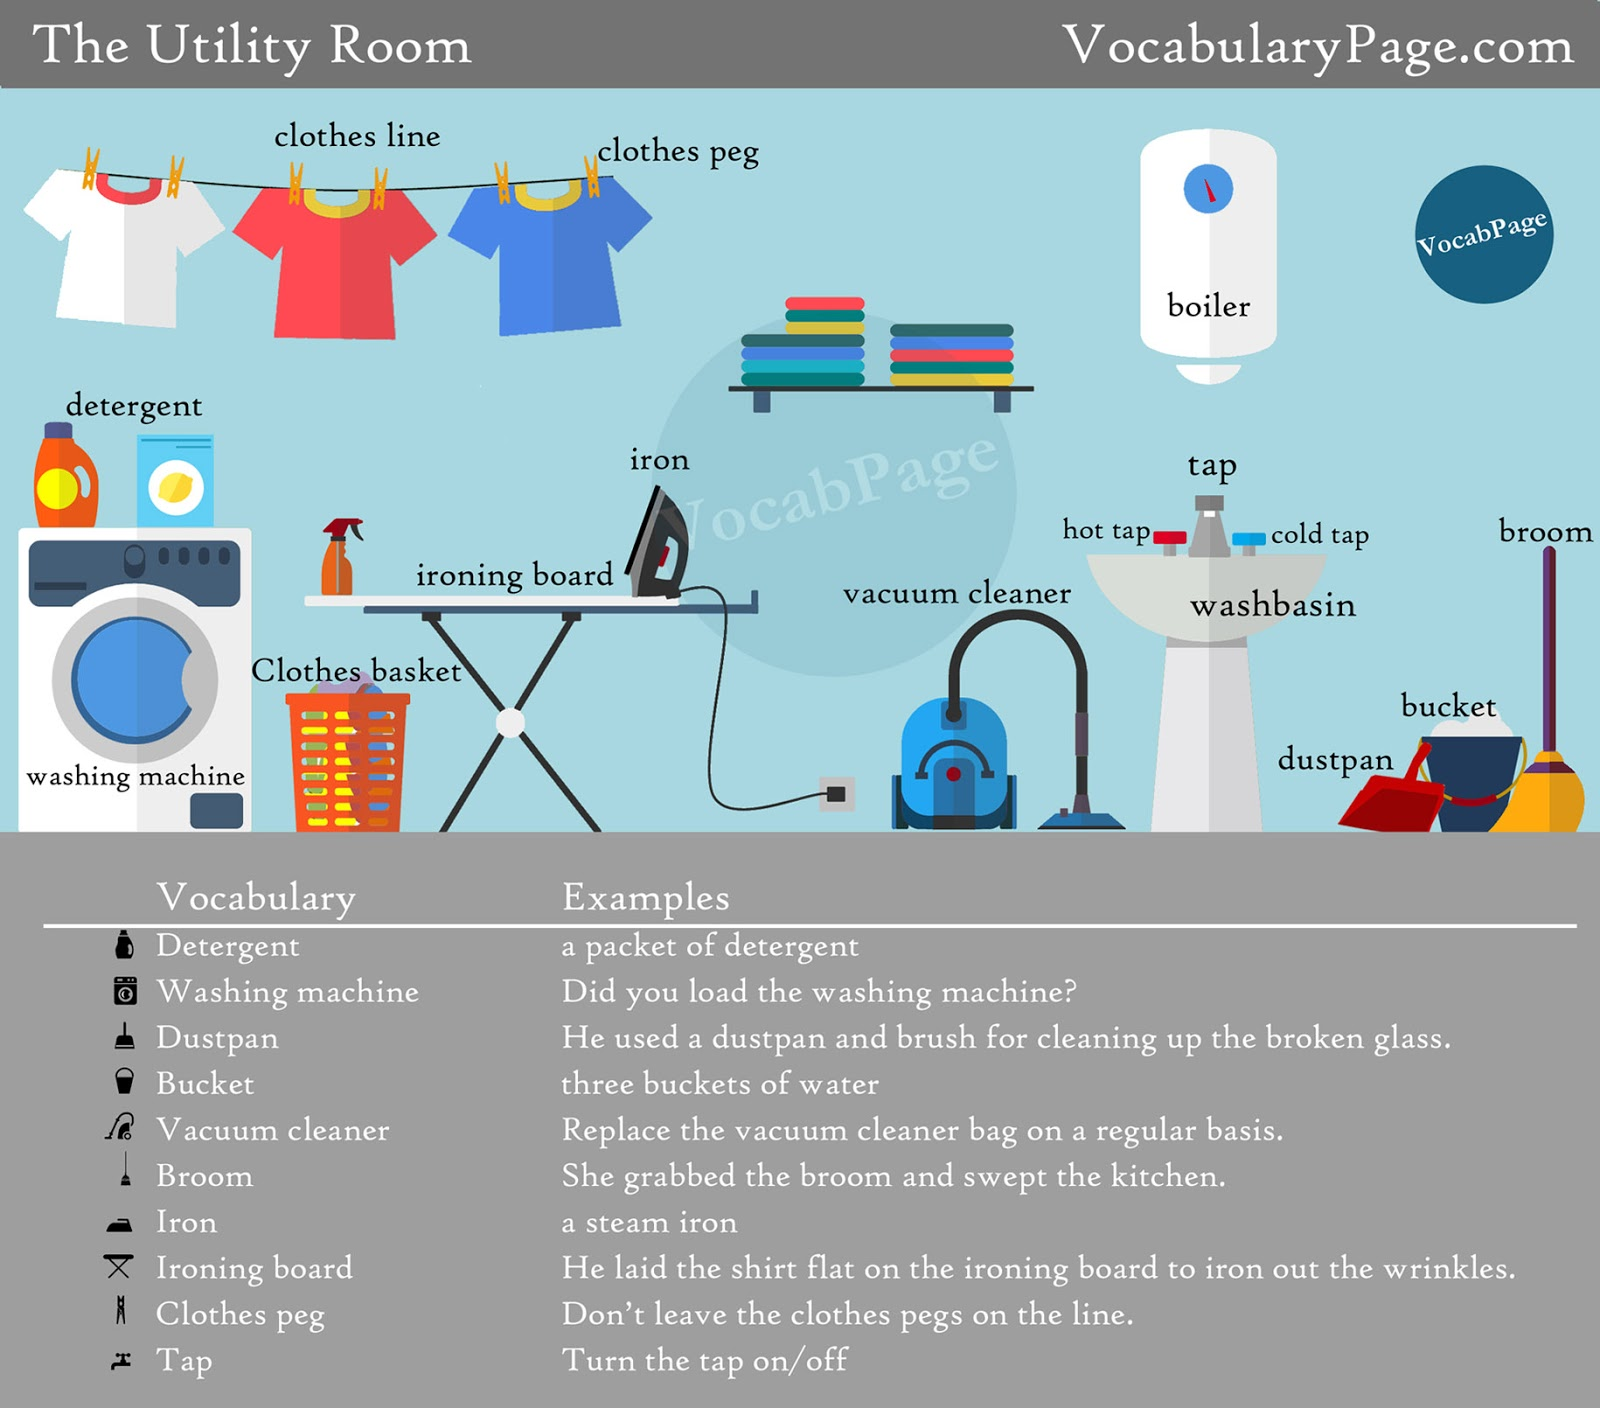 The Utility Room Vocabulary